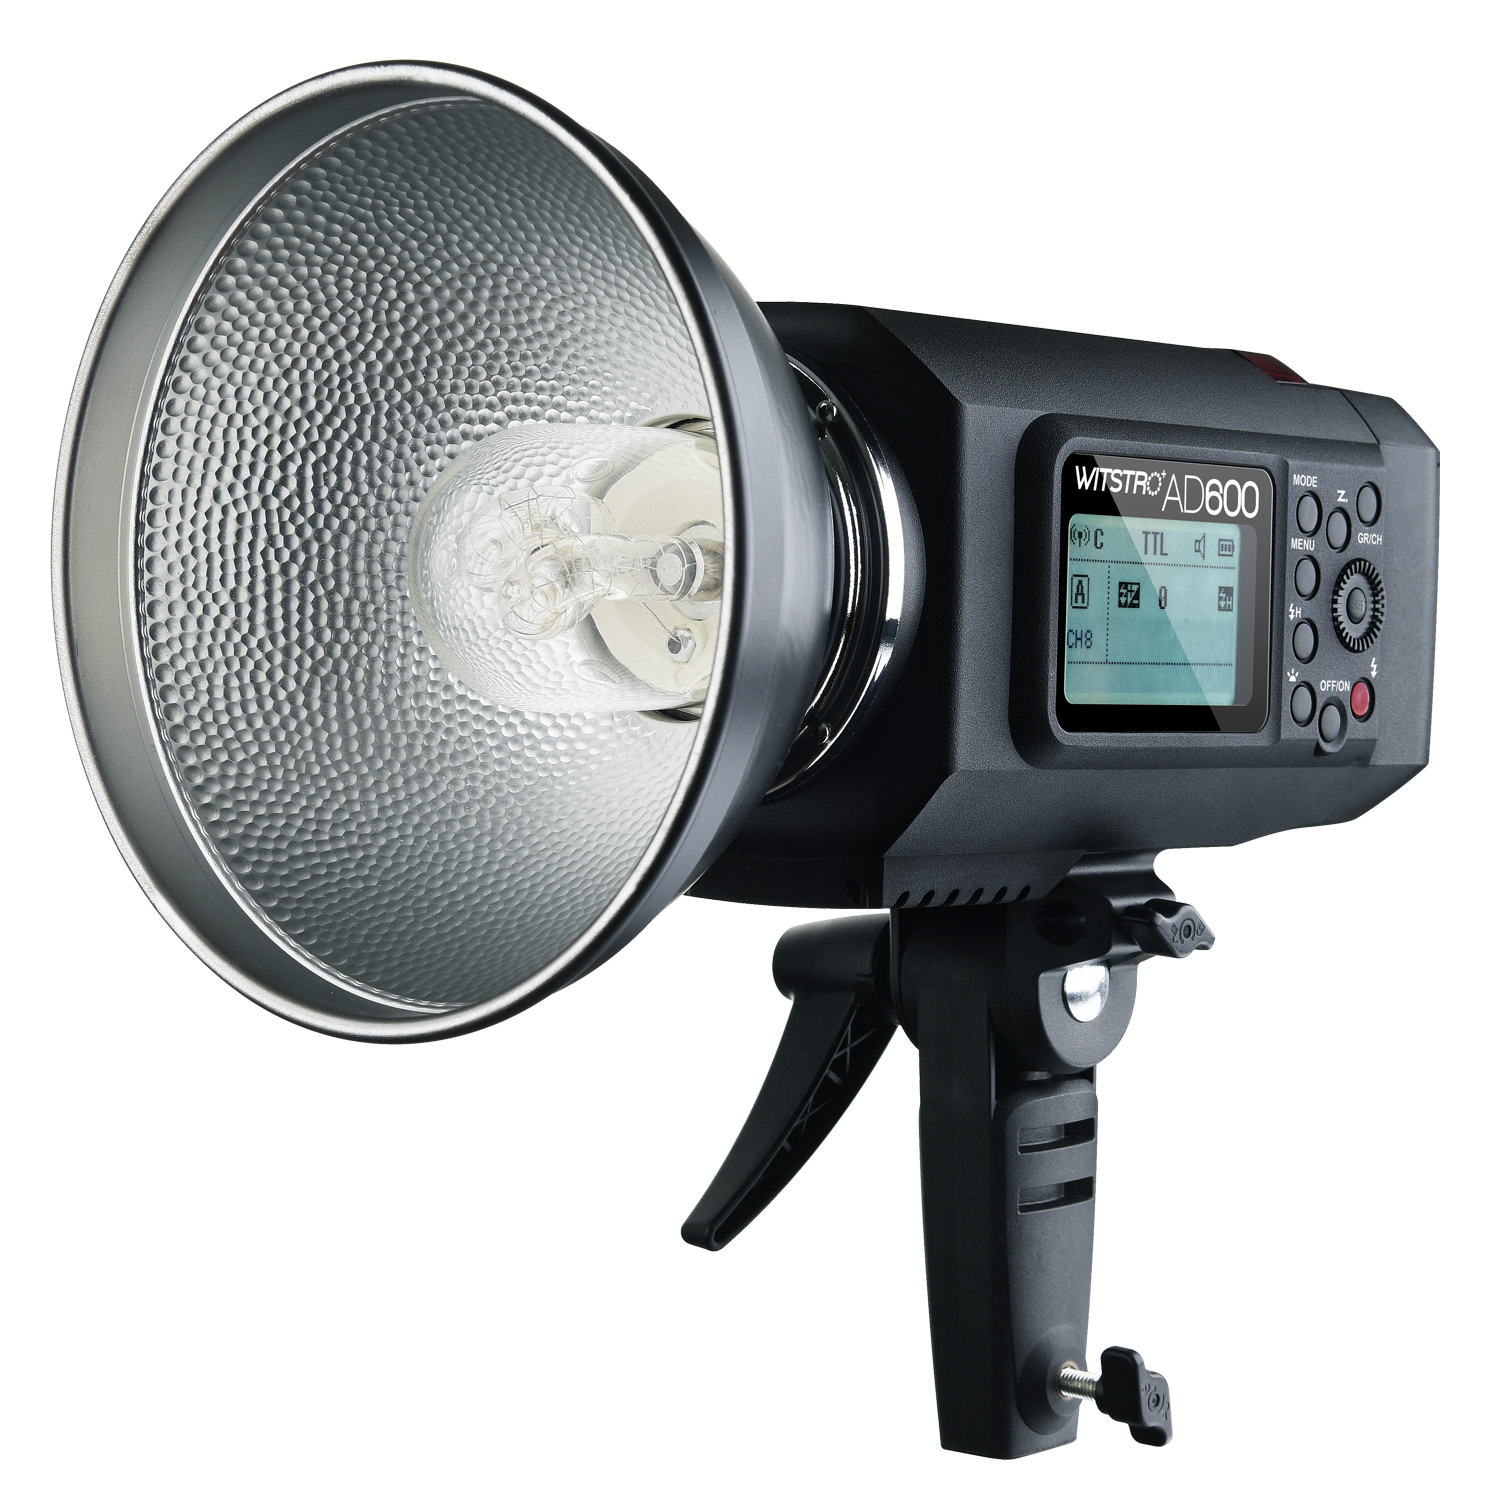 Godox Photo studio AD600 600WS dual flash high-speed synchronous version of the manual built-in flash NO00DC the woman in the photo